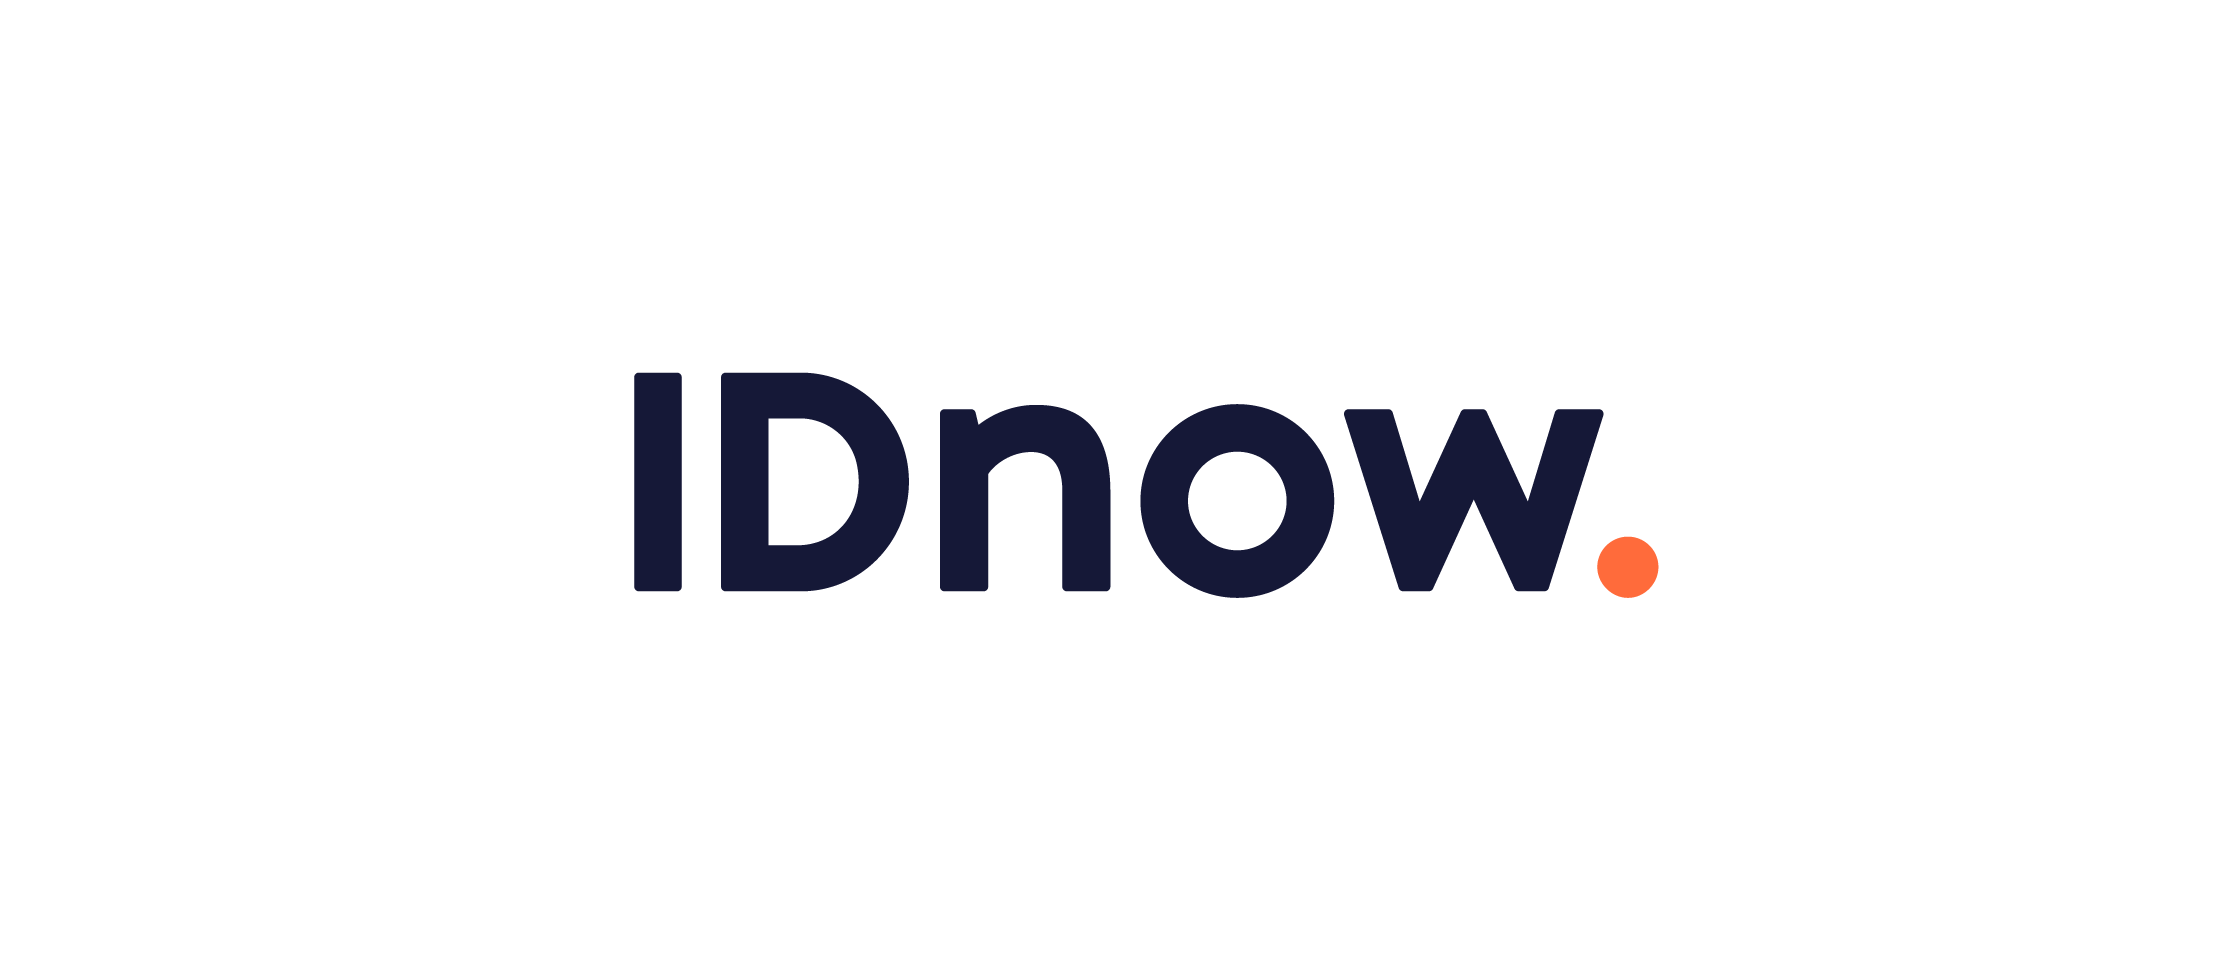 IDnow Introduces NFC Based Verification for Digital IDs